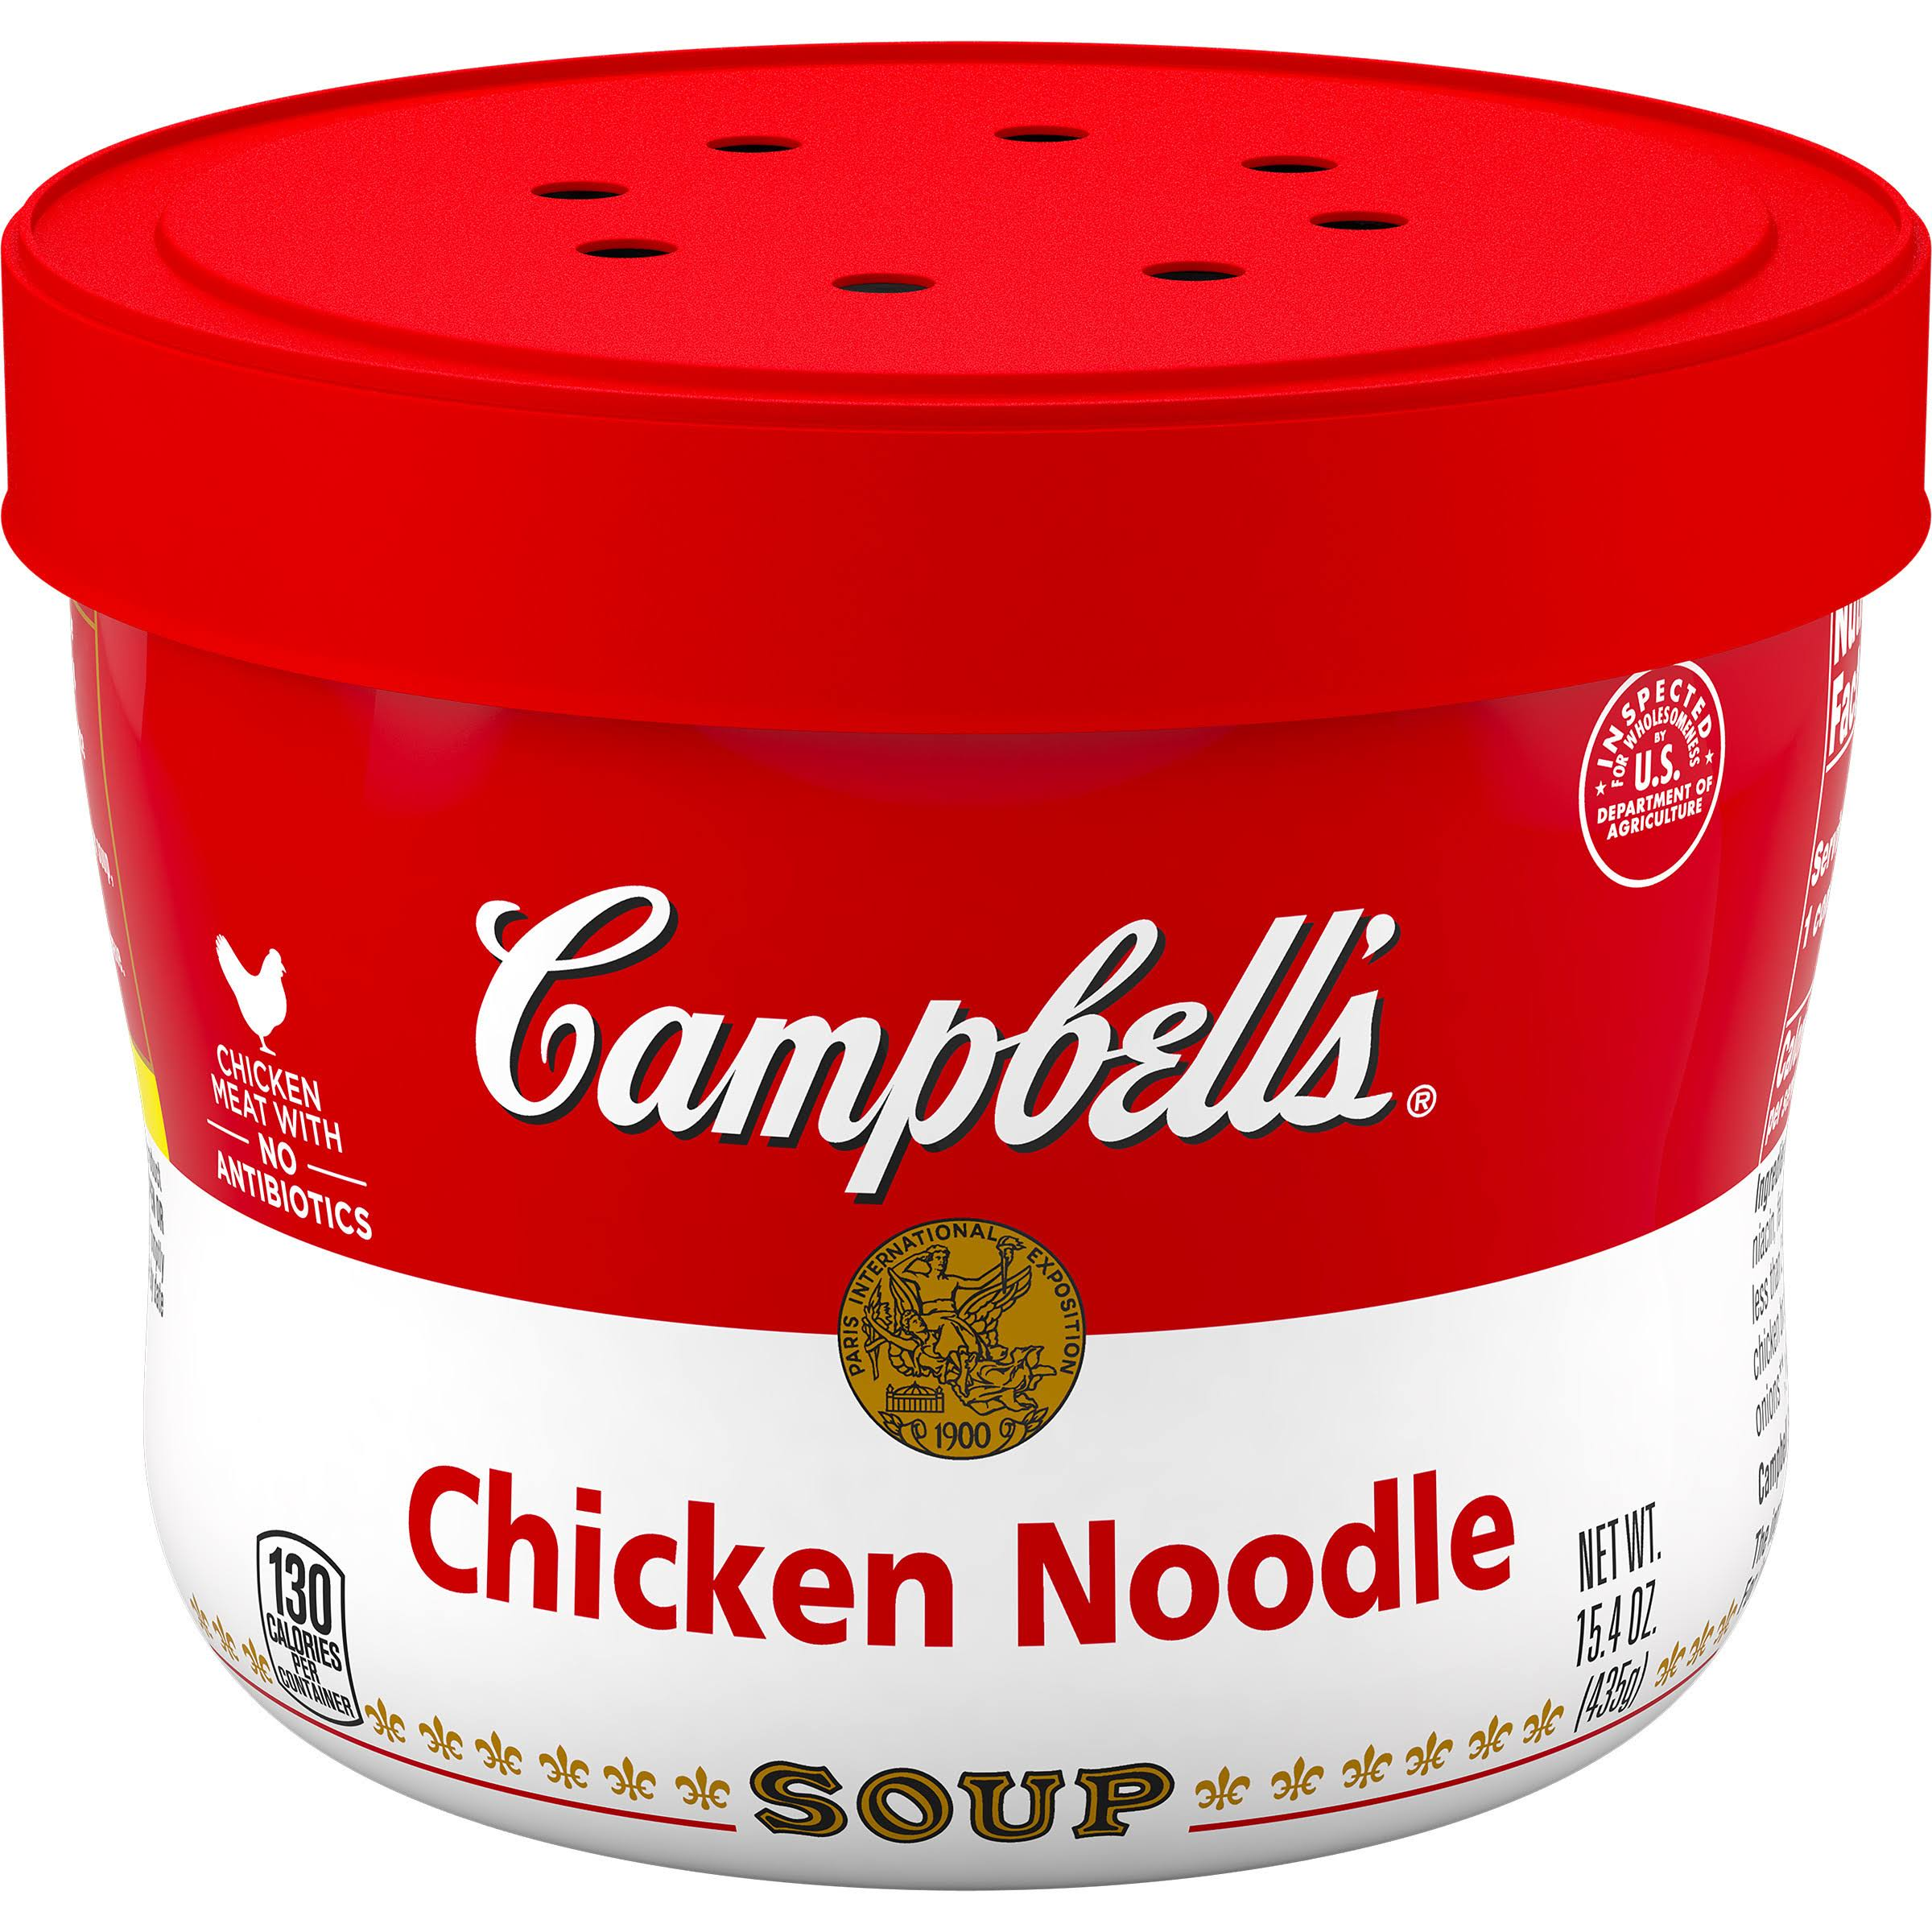 Campbell's Champ Soup - Chicken Noodle, 15.4oz